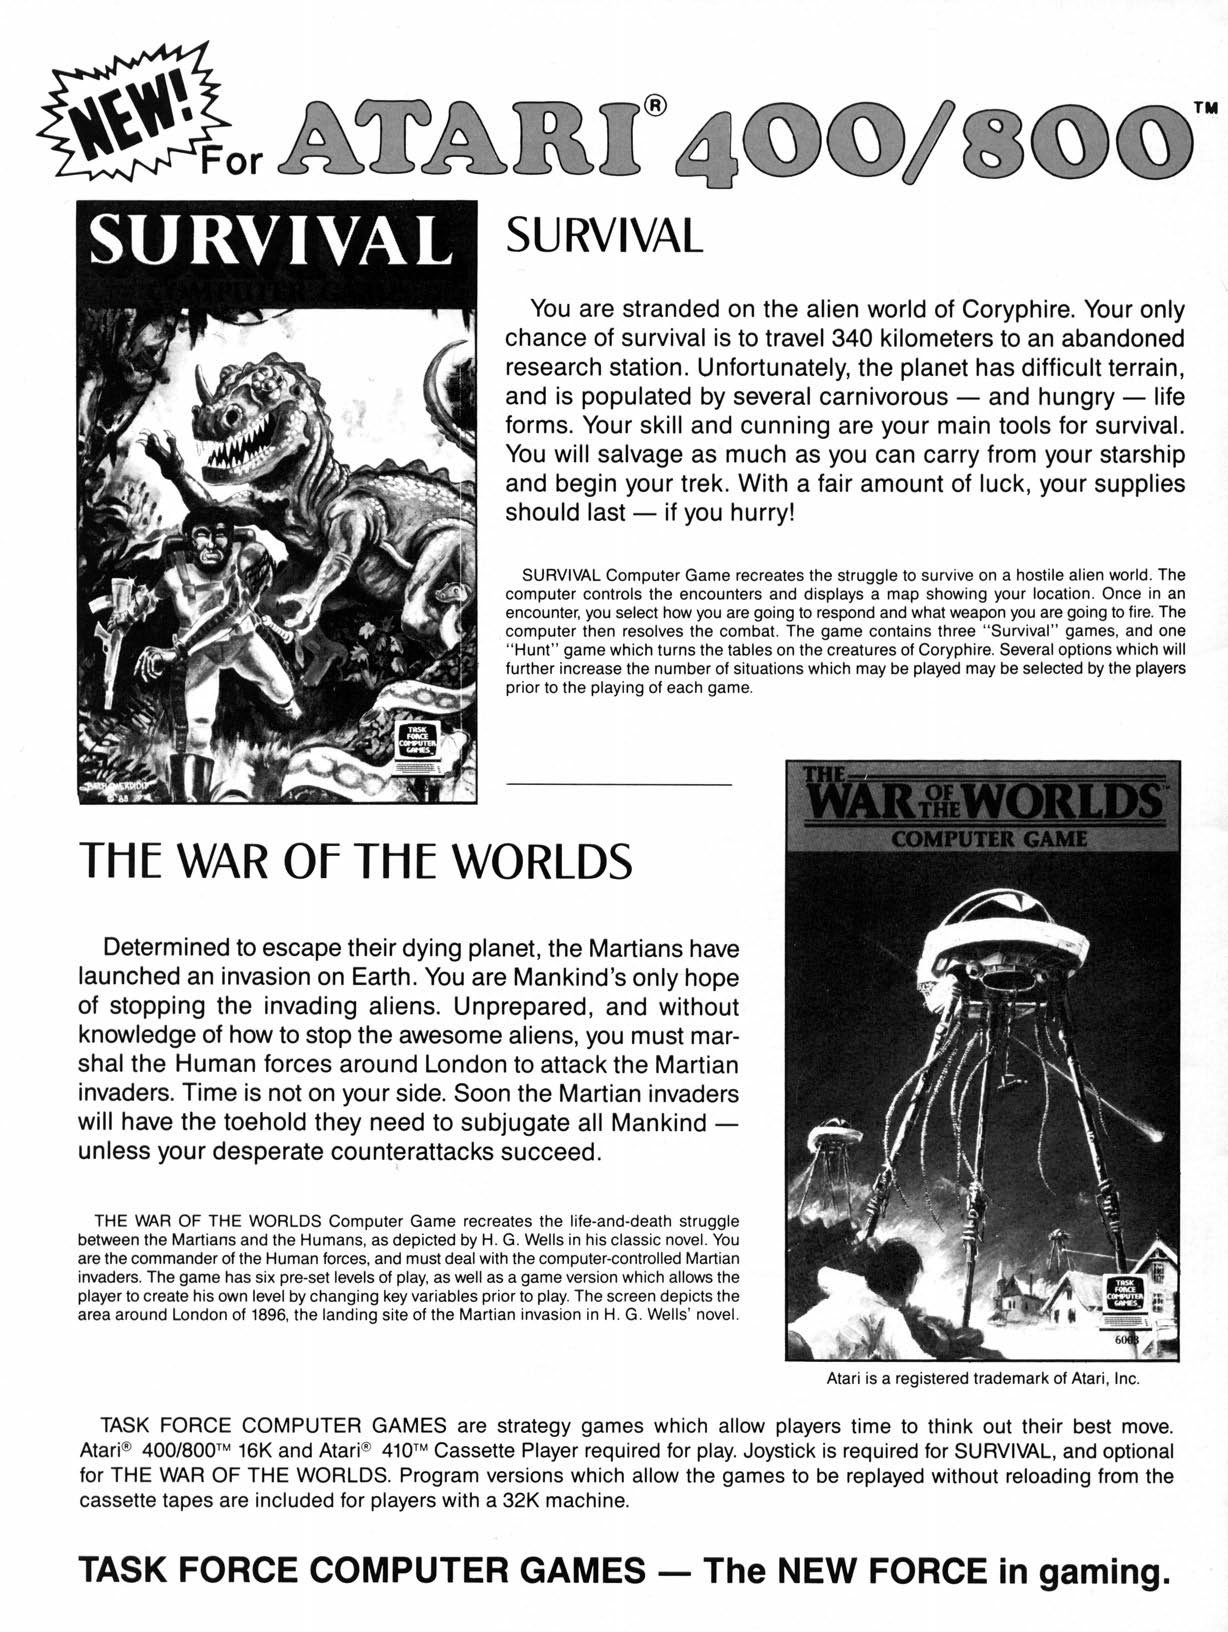 Survival, War of the Worlds